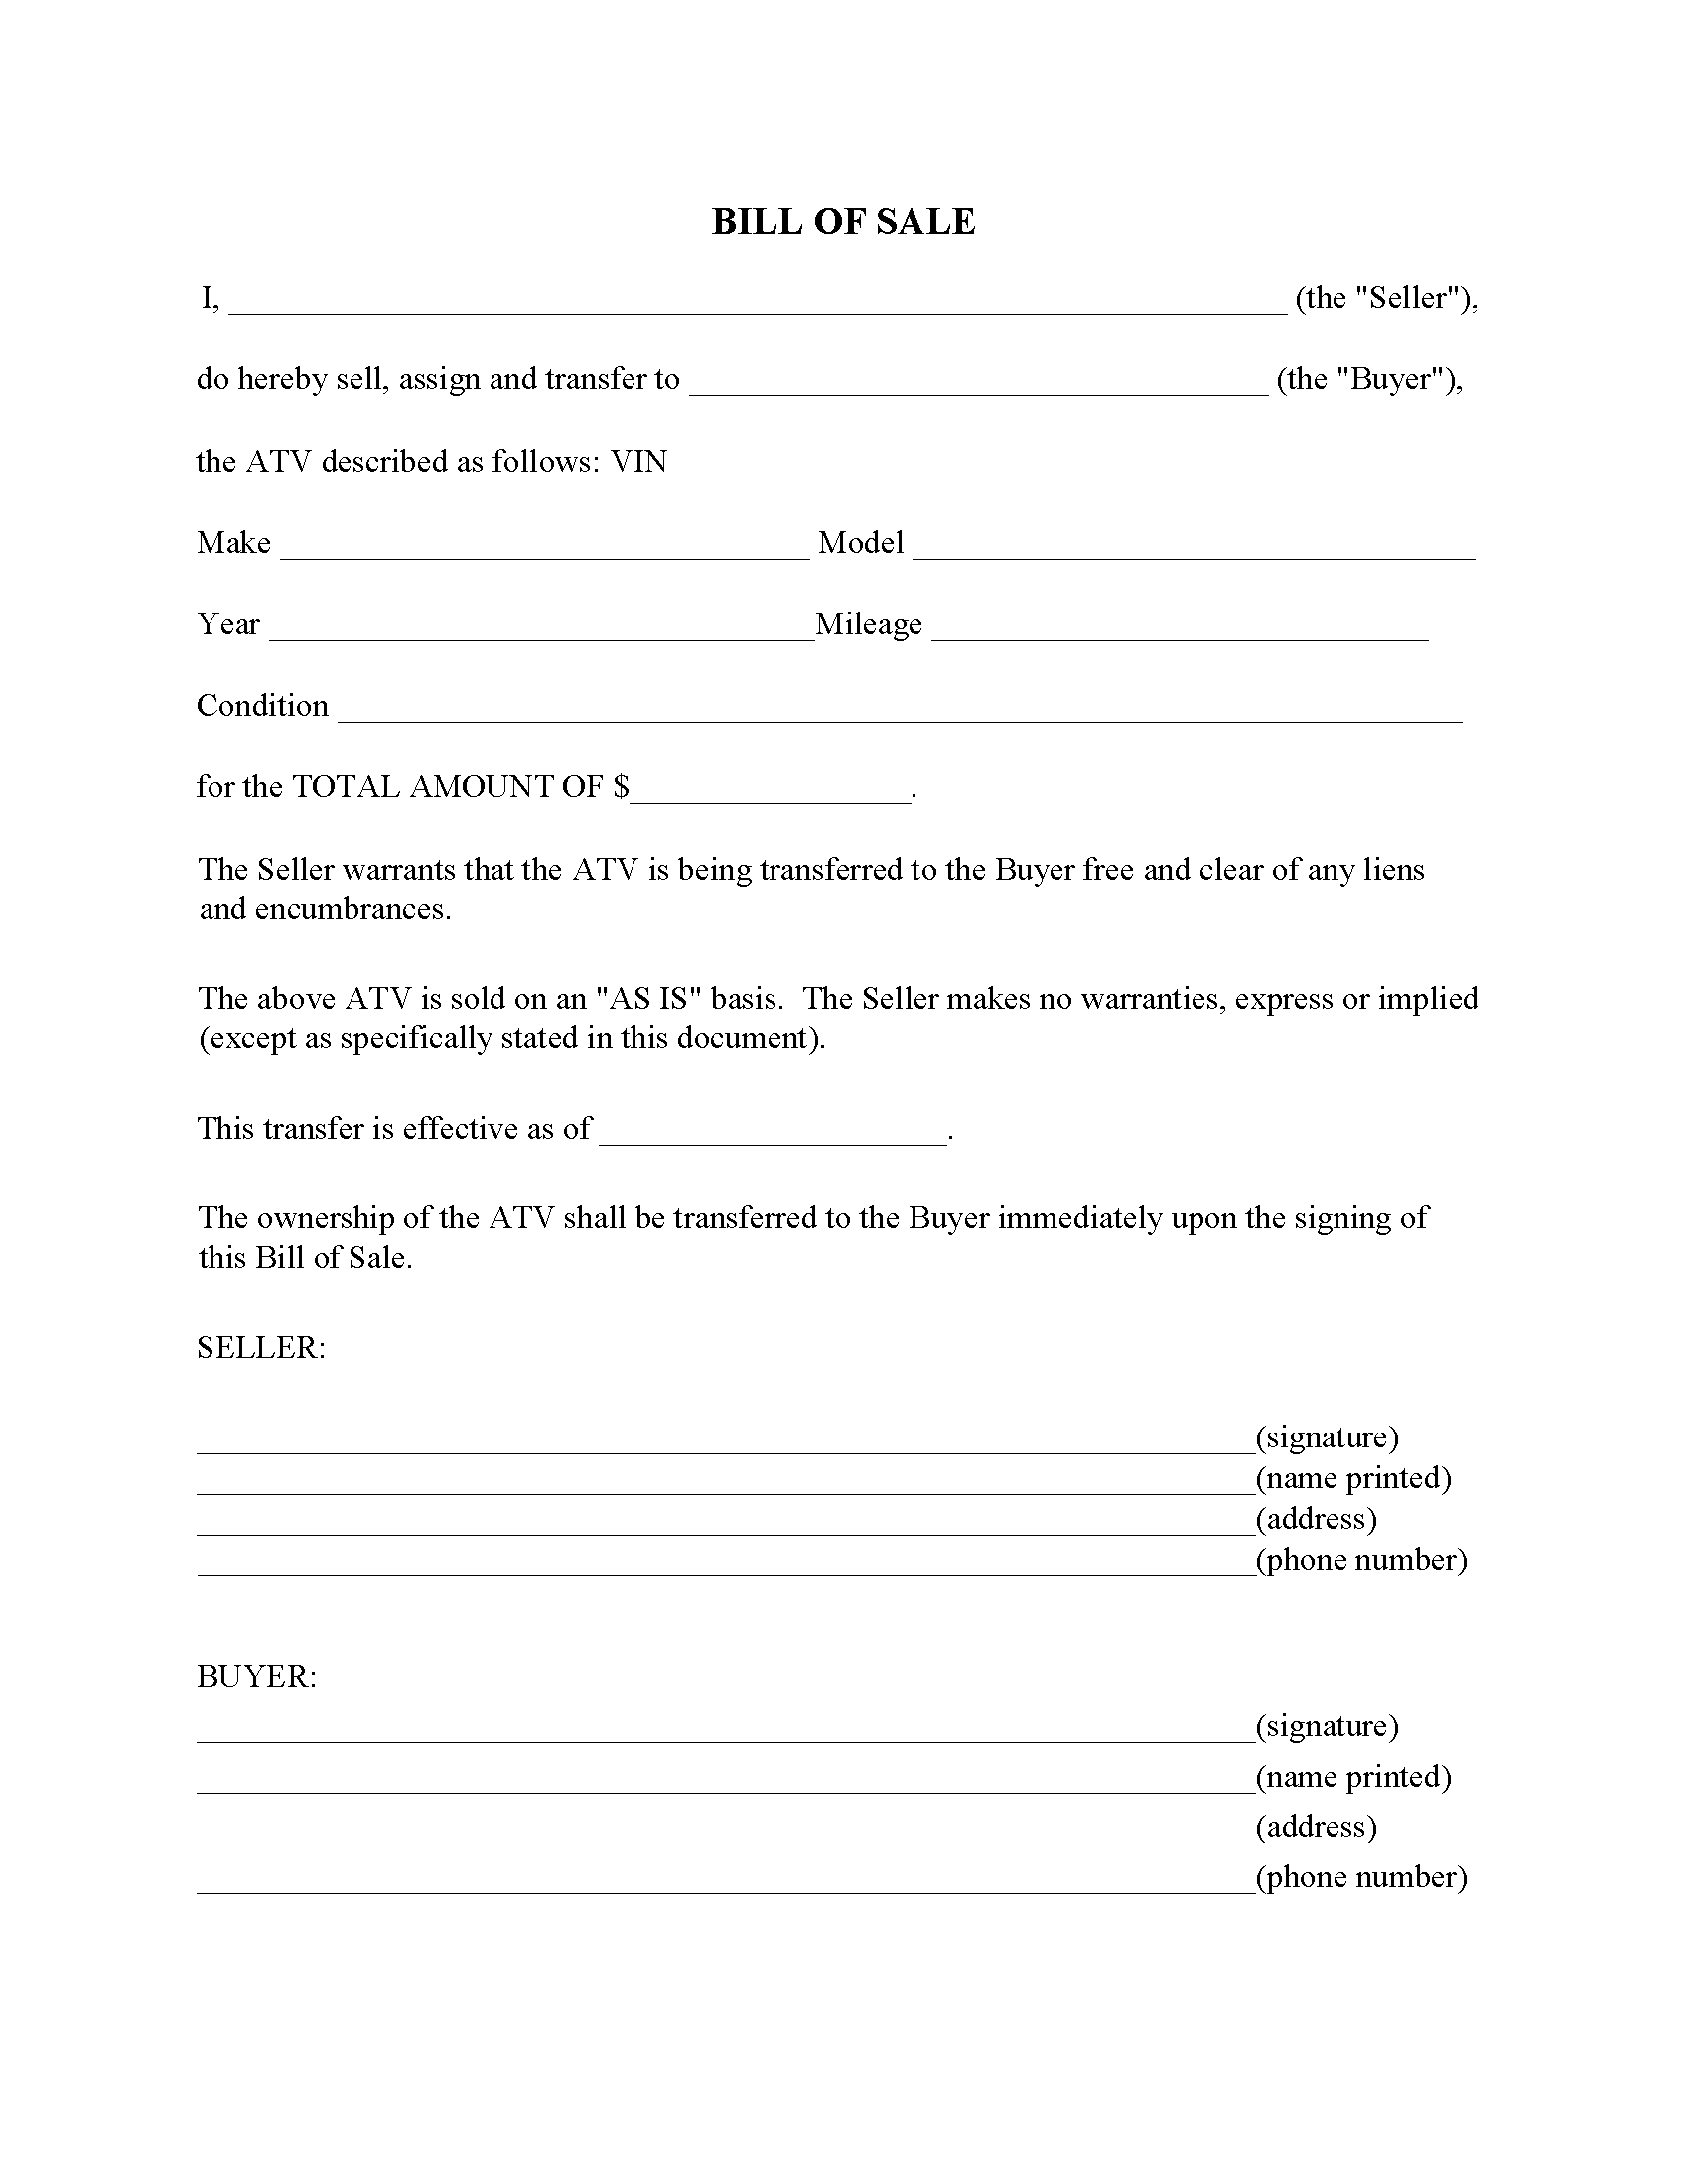 Louisiana ATV Bill Of Sale Form Free Printable Legal Forms